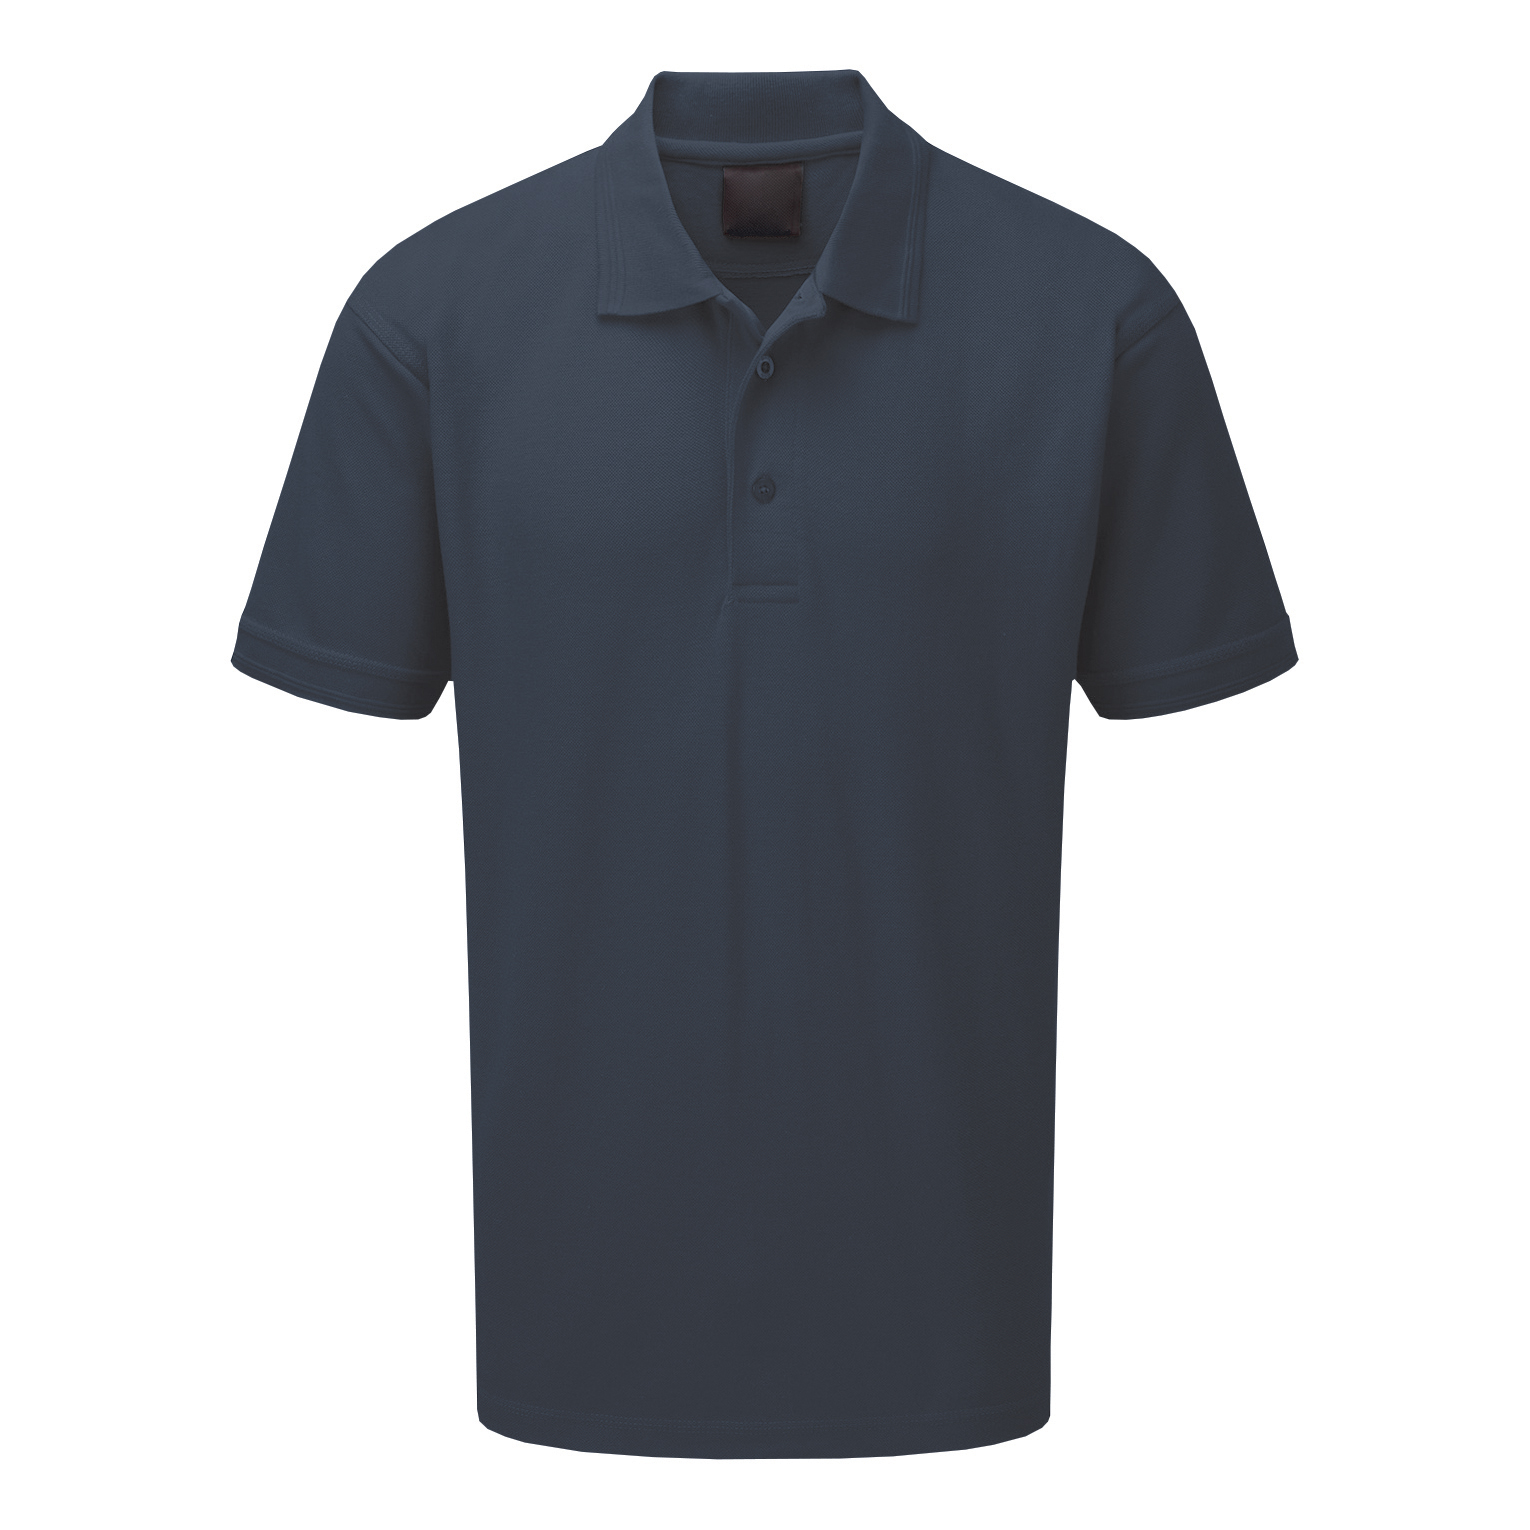 Premium Polo Shirt Triple Button 220gsm Polycotton XS Graphite Ref CLPKSGYXS *Approx 3 Day Leadtime**